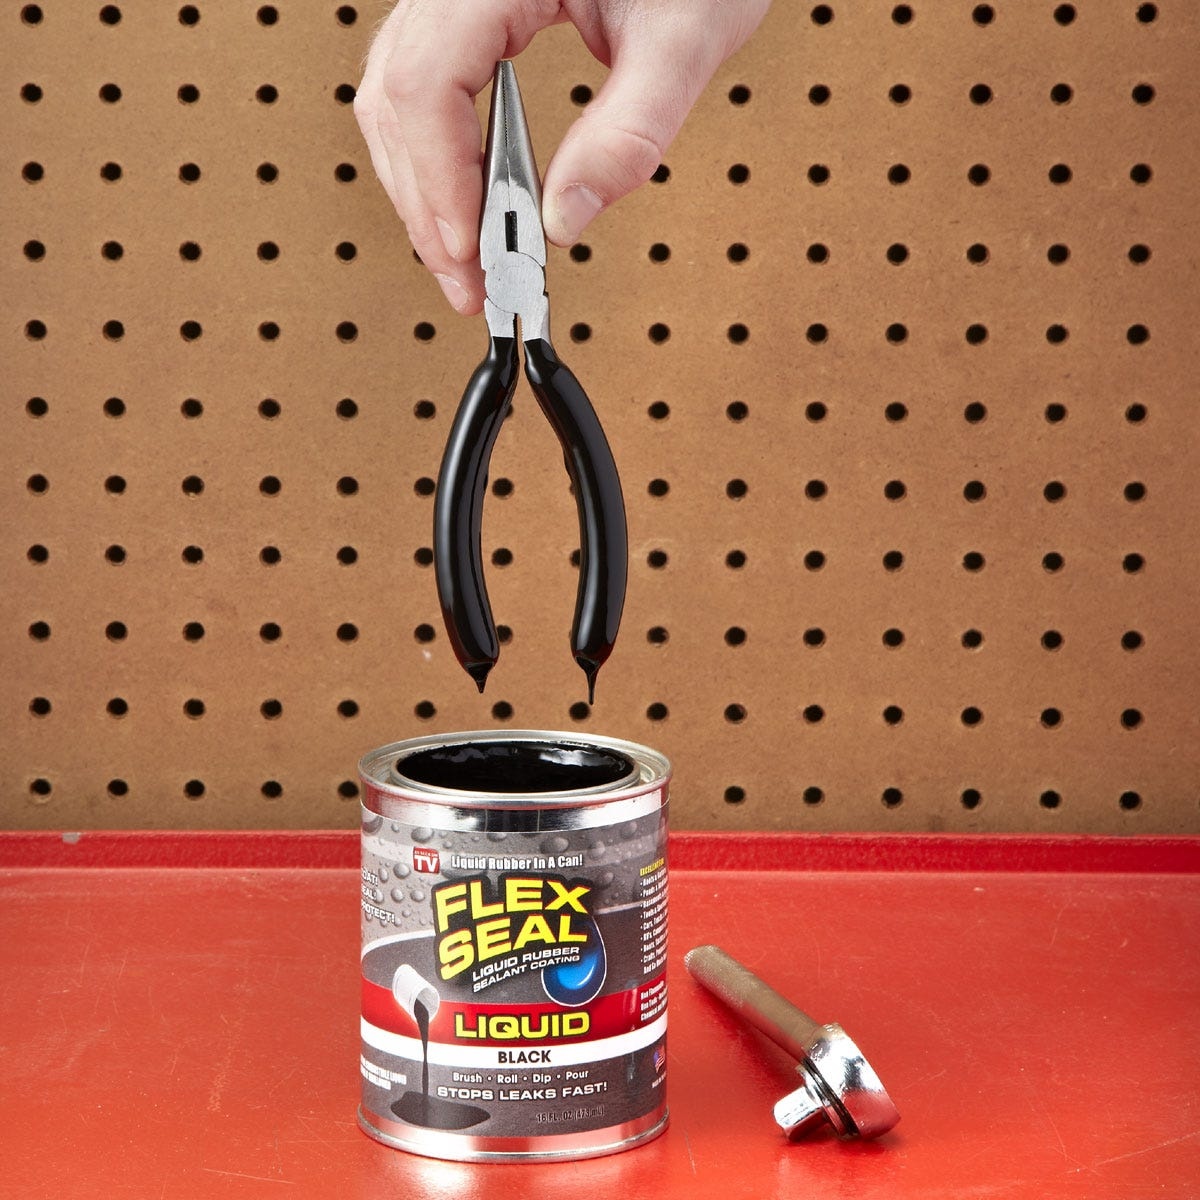 Flex Seal 174 Liquid From Sporty S Tool Shop